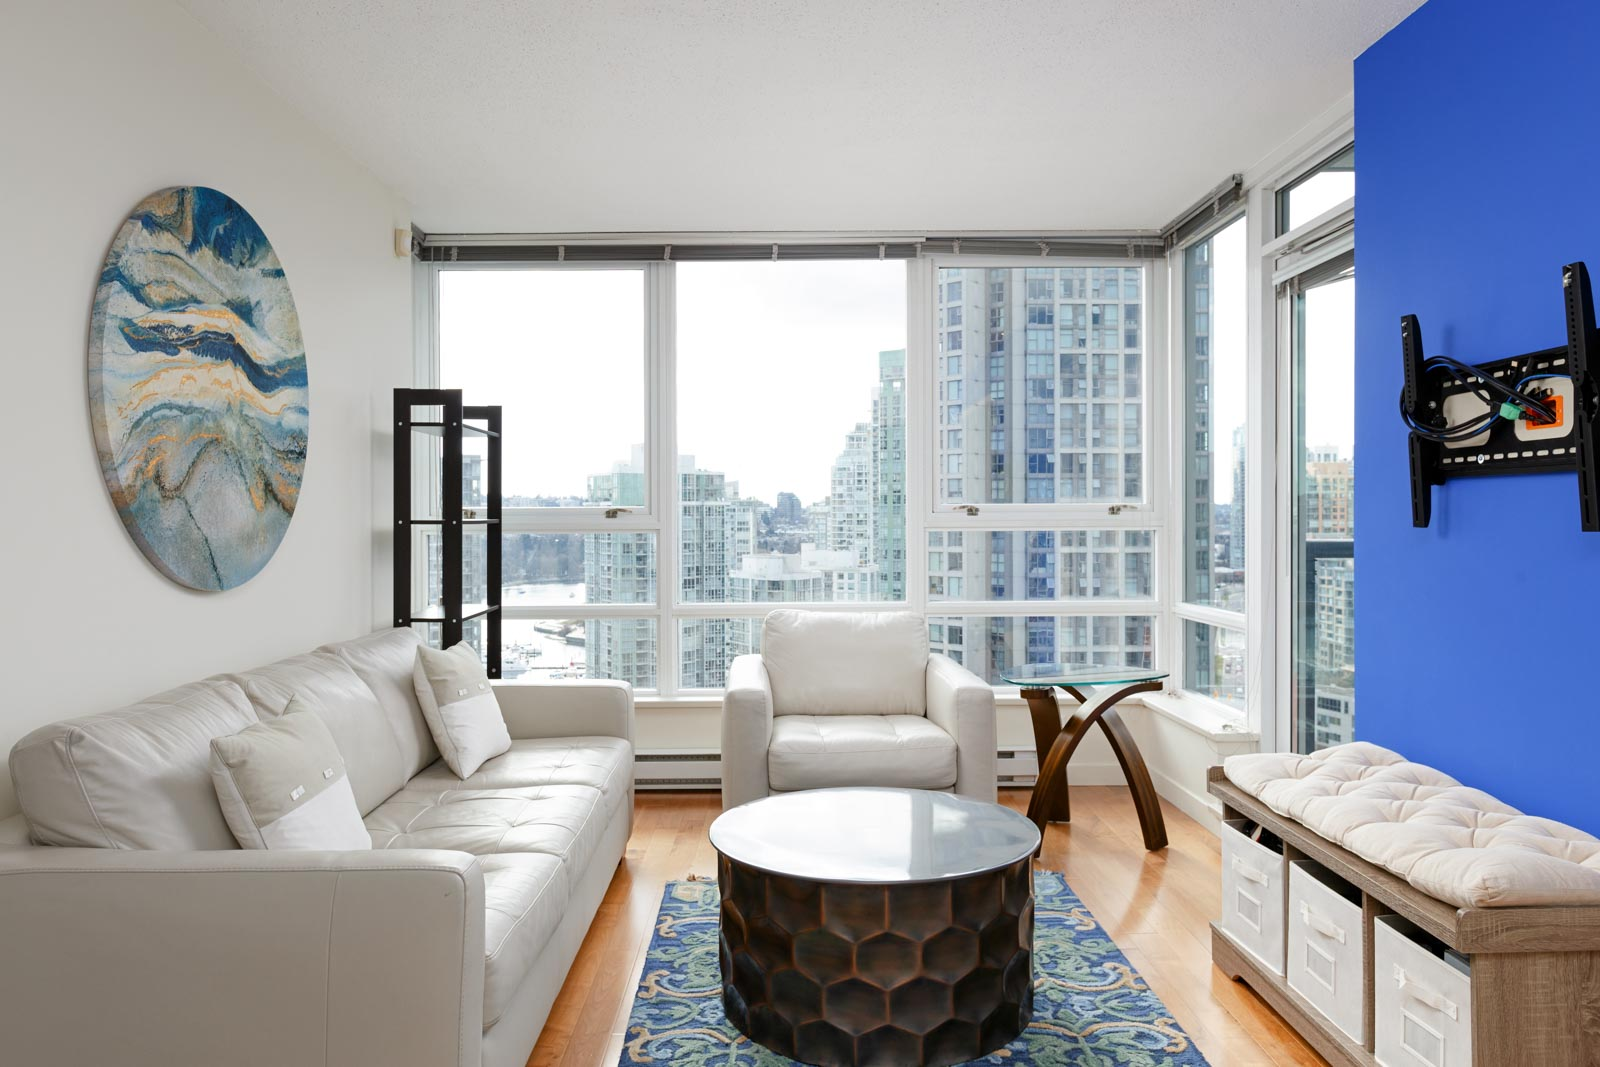 Living room with views from Downtown Vancouver rental condo.